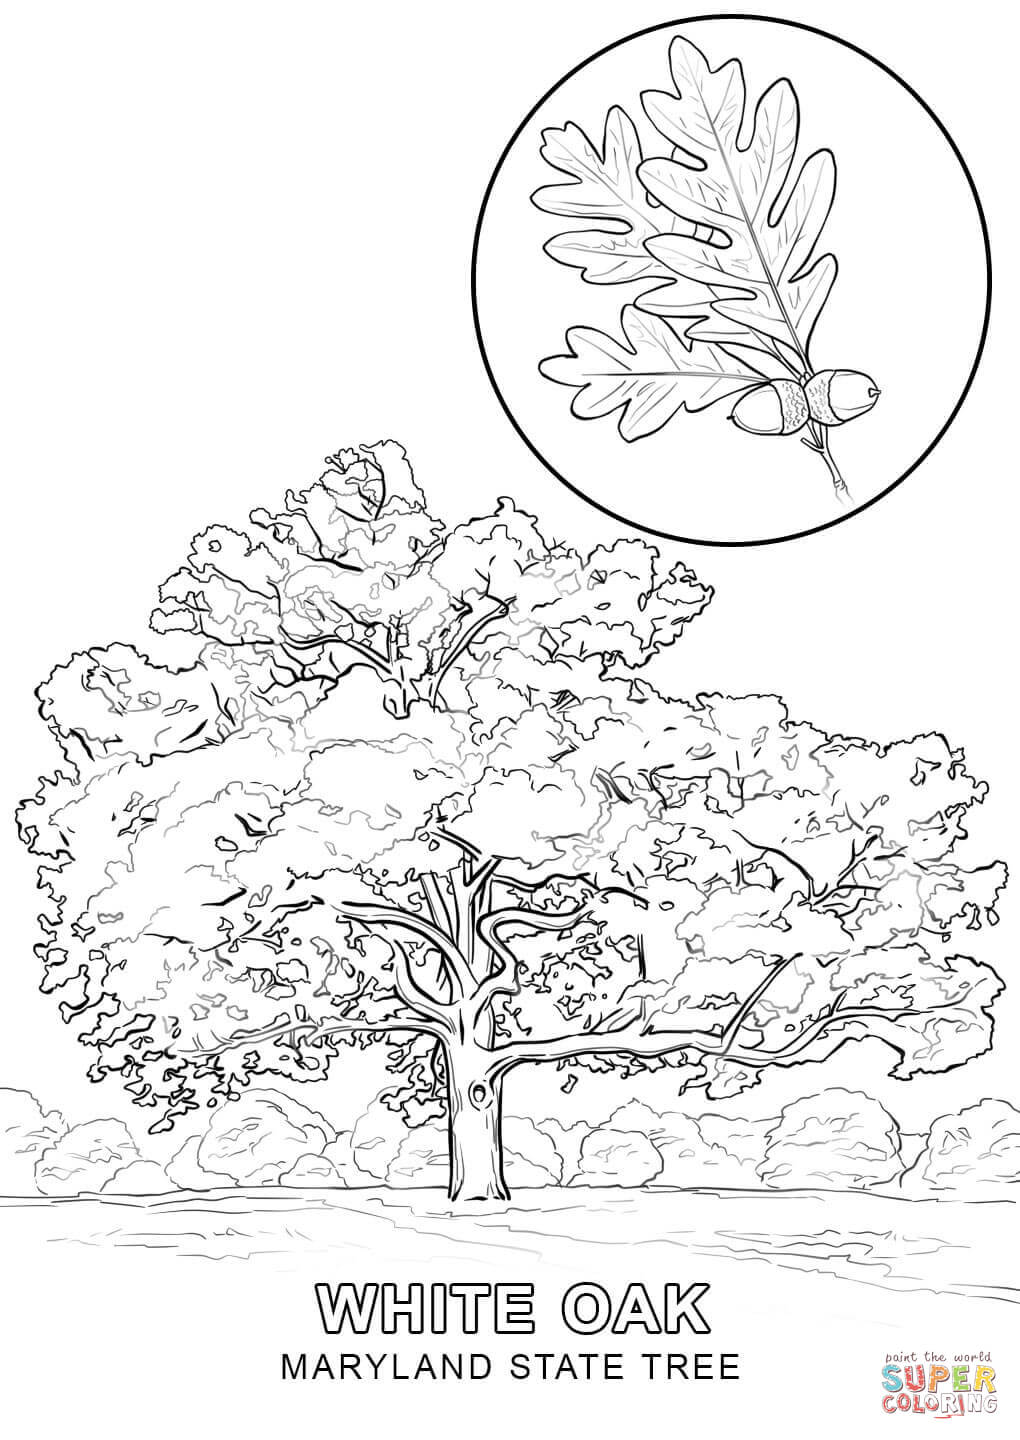 maryland state tree maryland state tree coloring page thousand of the best tree maryland state